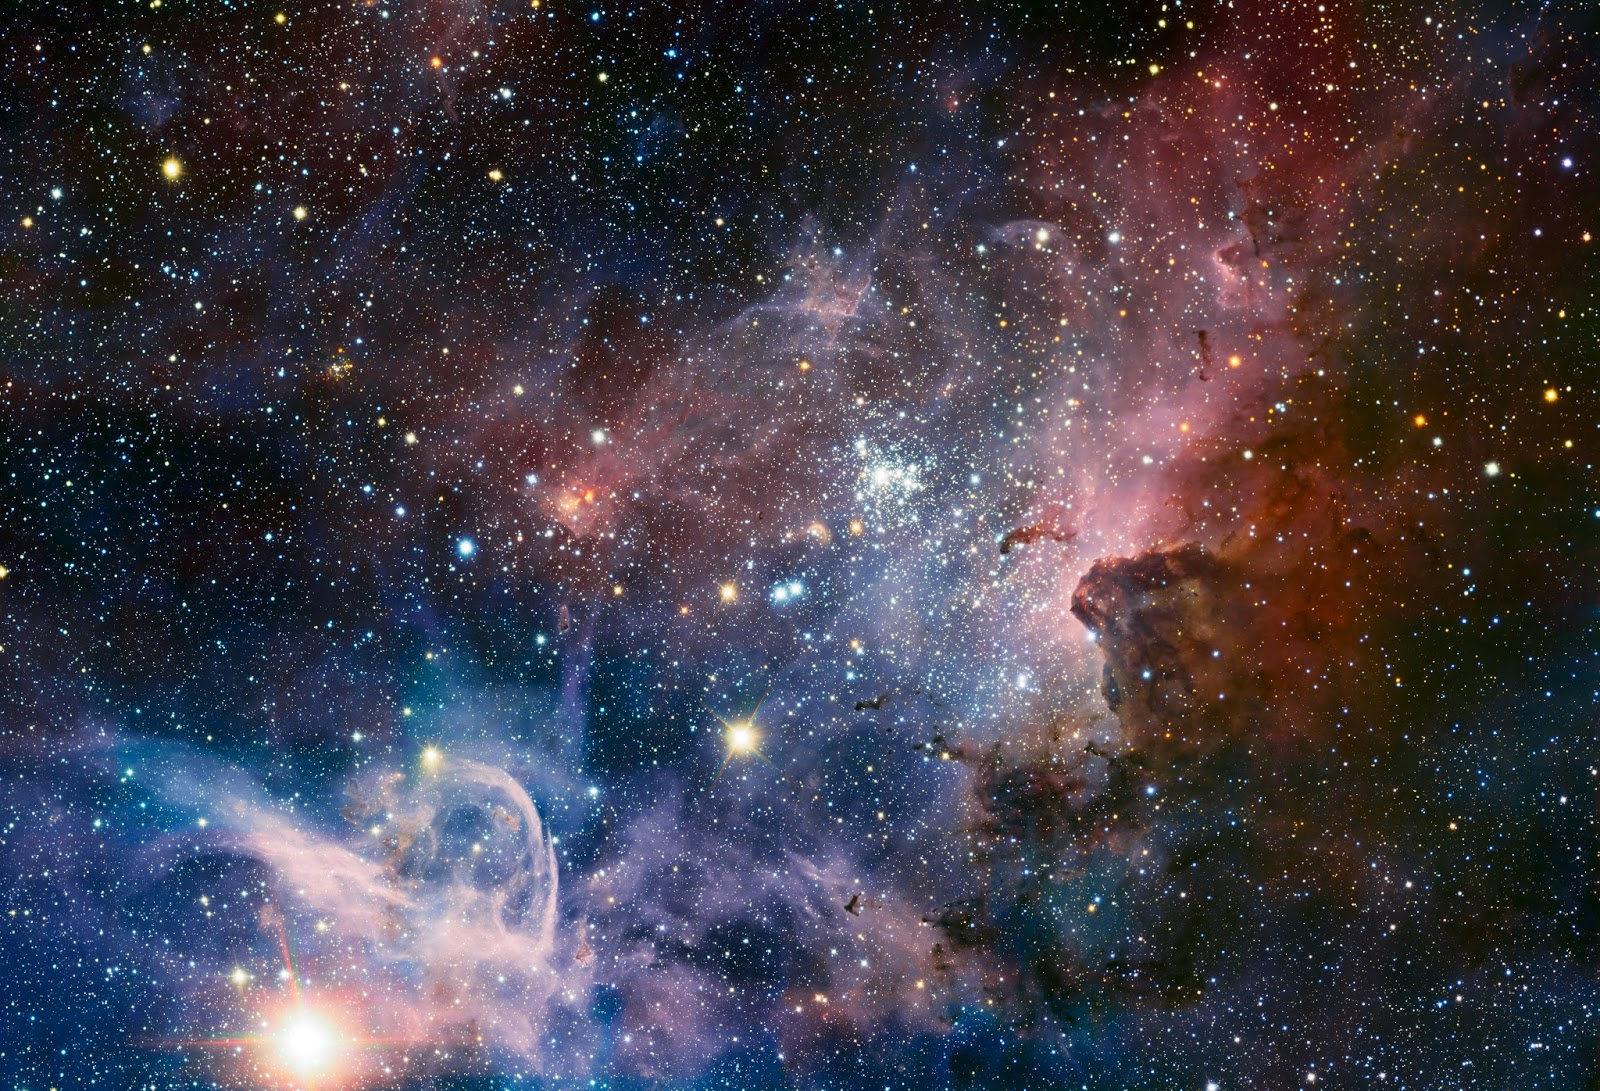 This broad image of the Carina Nebula, a region of massive star formation in the southern skies, was taken in infrared light using the HAWK-I camera on ESO's Very Large Telescope. Many previously hidden features, scattered across a spectacular celestial landscape of gas, dust and young stars, have emerged.  Image Credit:ESO/T. Preibisch Explanation from: http://www.eso.org/public/images/eso1208a/